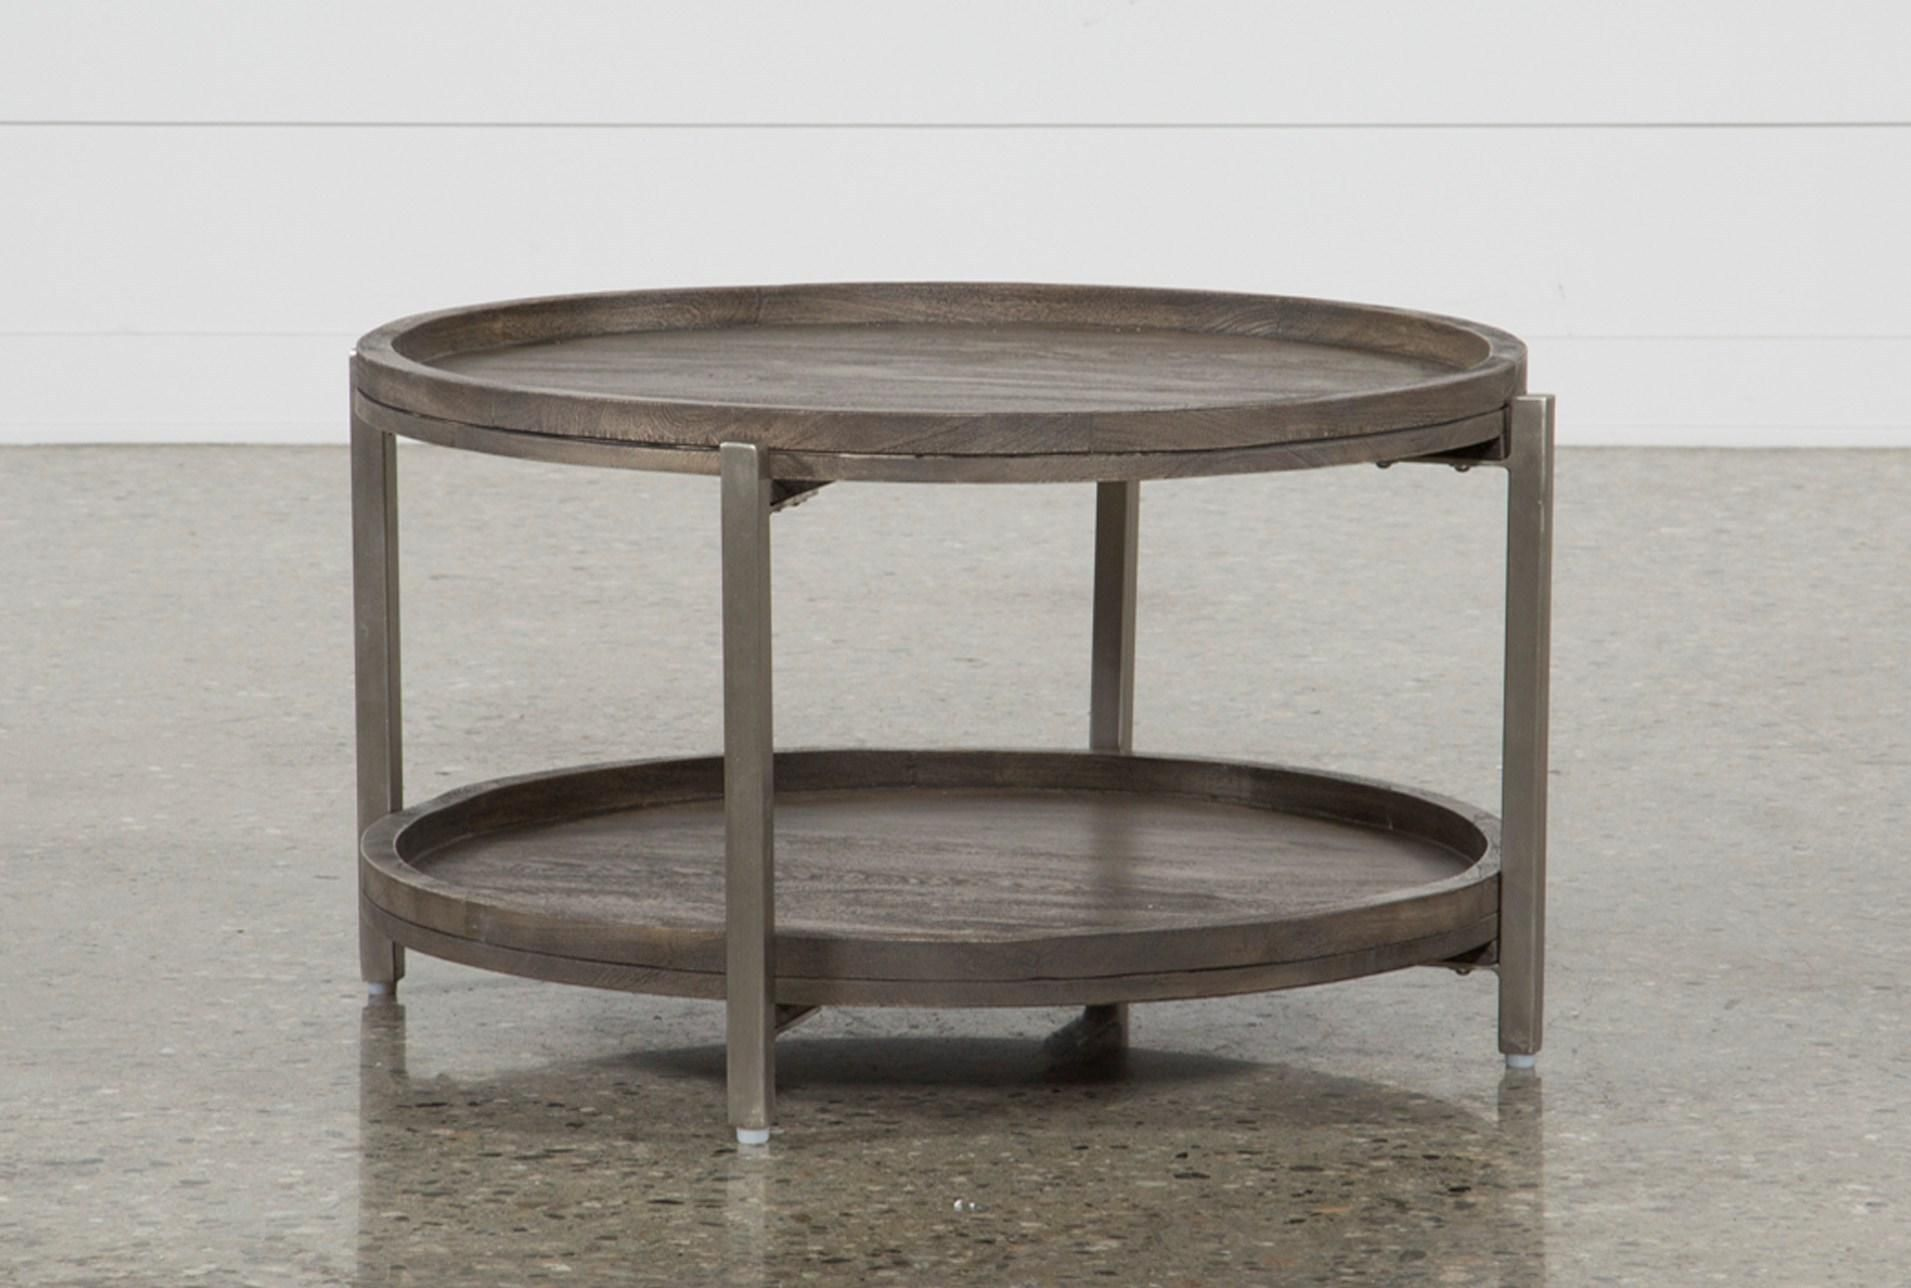 Swell Round Coffee Table With Images Round Coffee Table